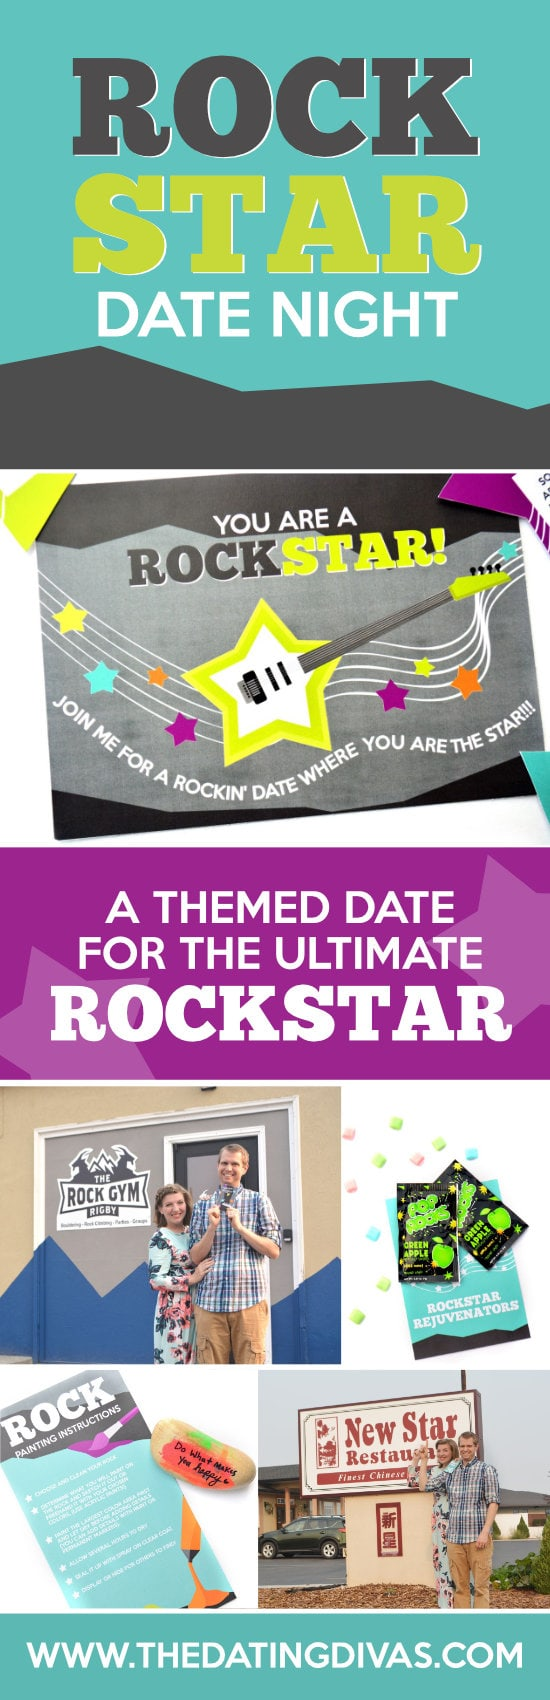 Take your sweetie on a rockstar date! #rockstardate #datenightidea